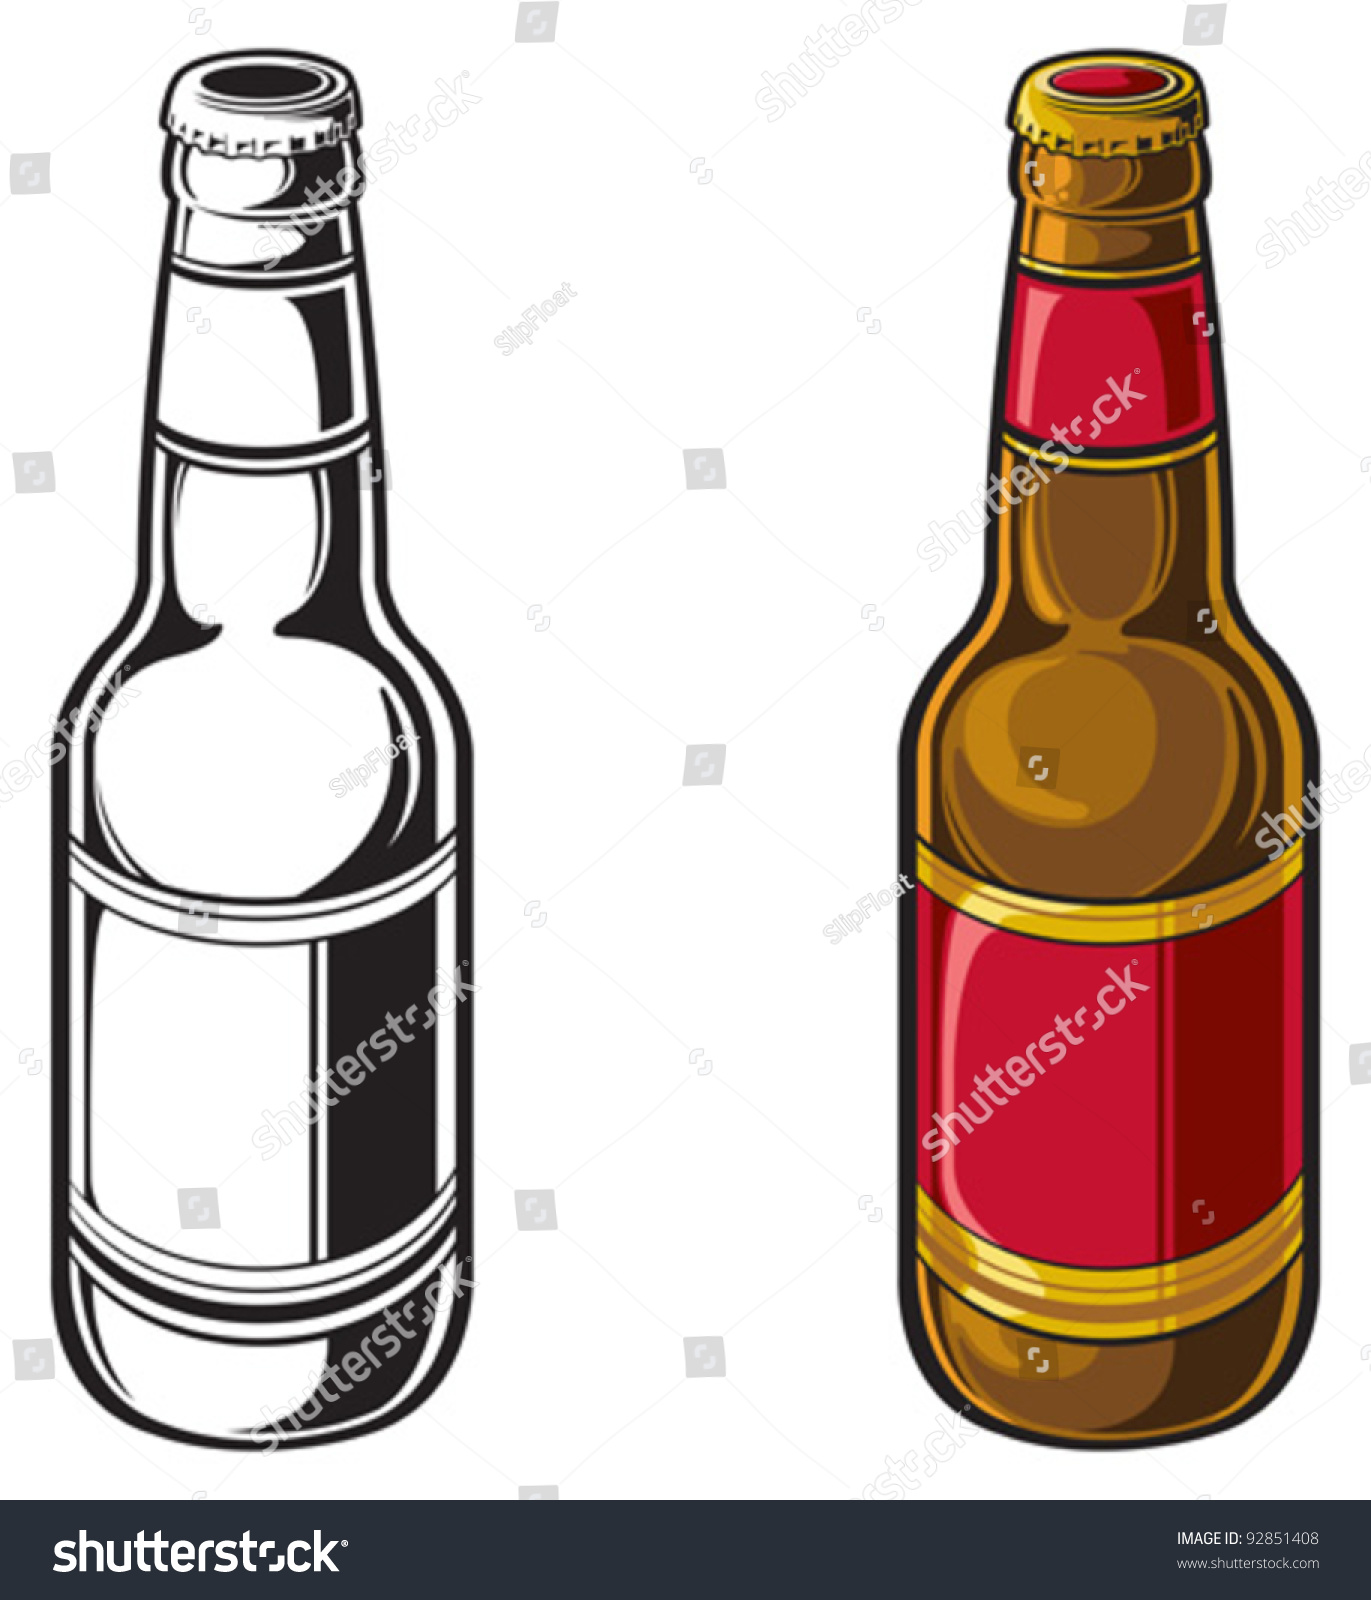 beer bottle stock vector 92851408 shutterstock rh shutterstock com beer bottle vector png free vector beer bottle silhouette